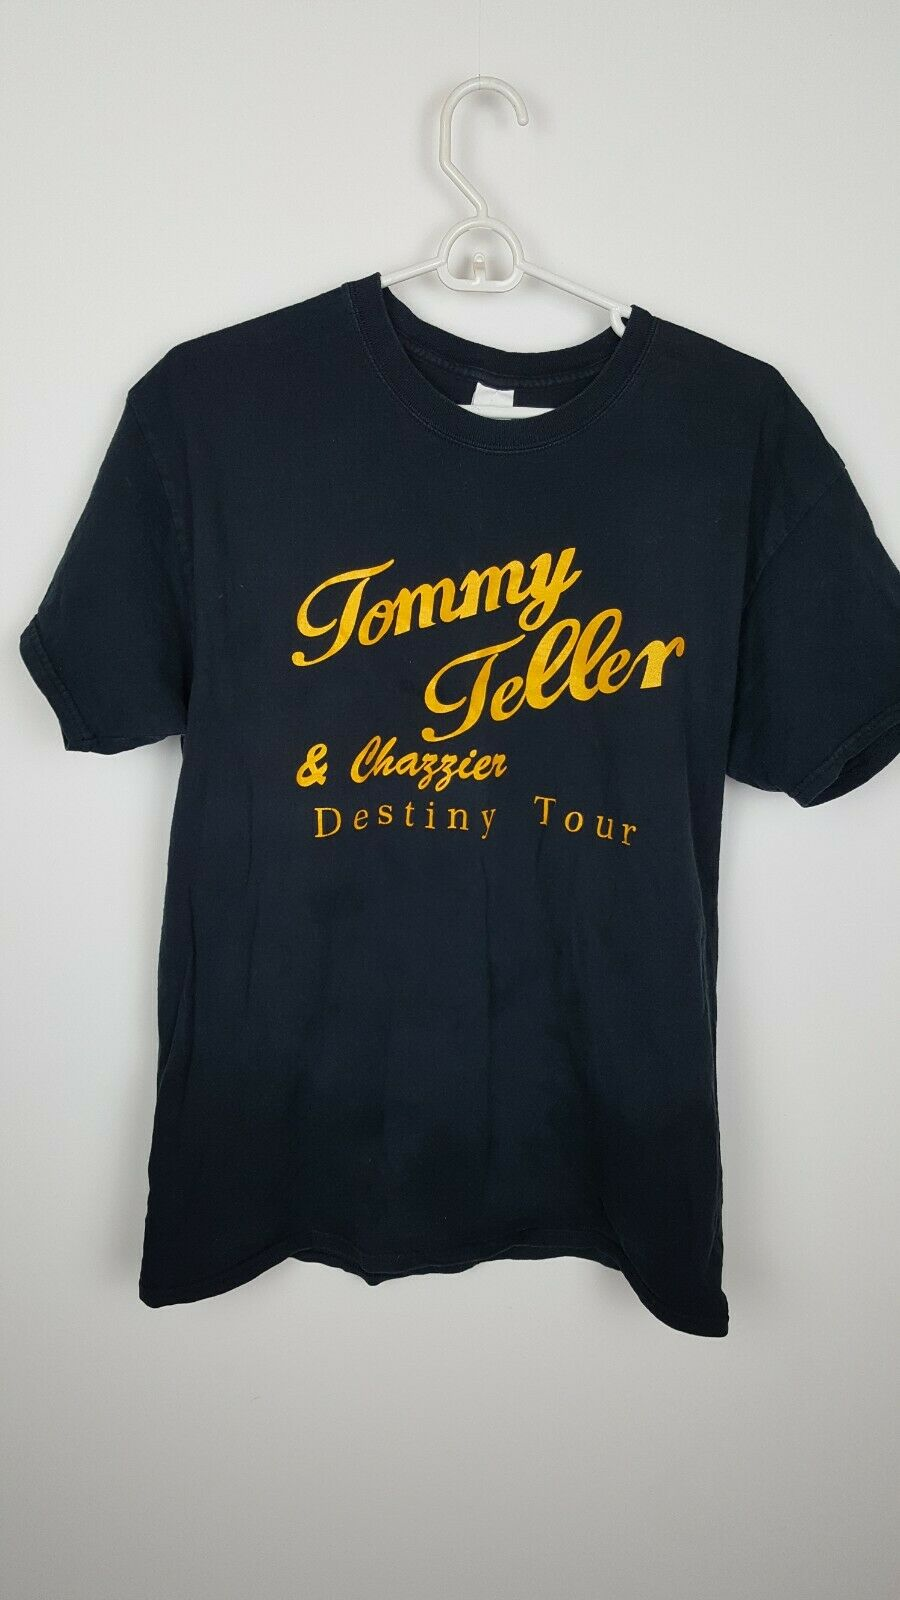 Tommy Teller Chazzier Black Yellow Vintage T Shirt Band Tee Mens Large SOA?